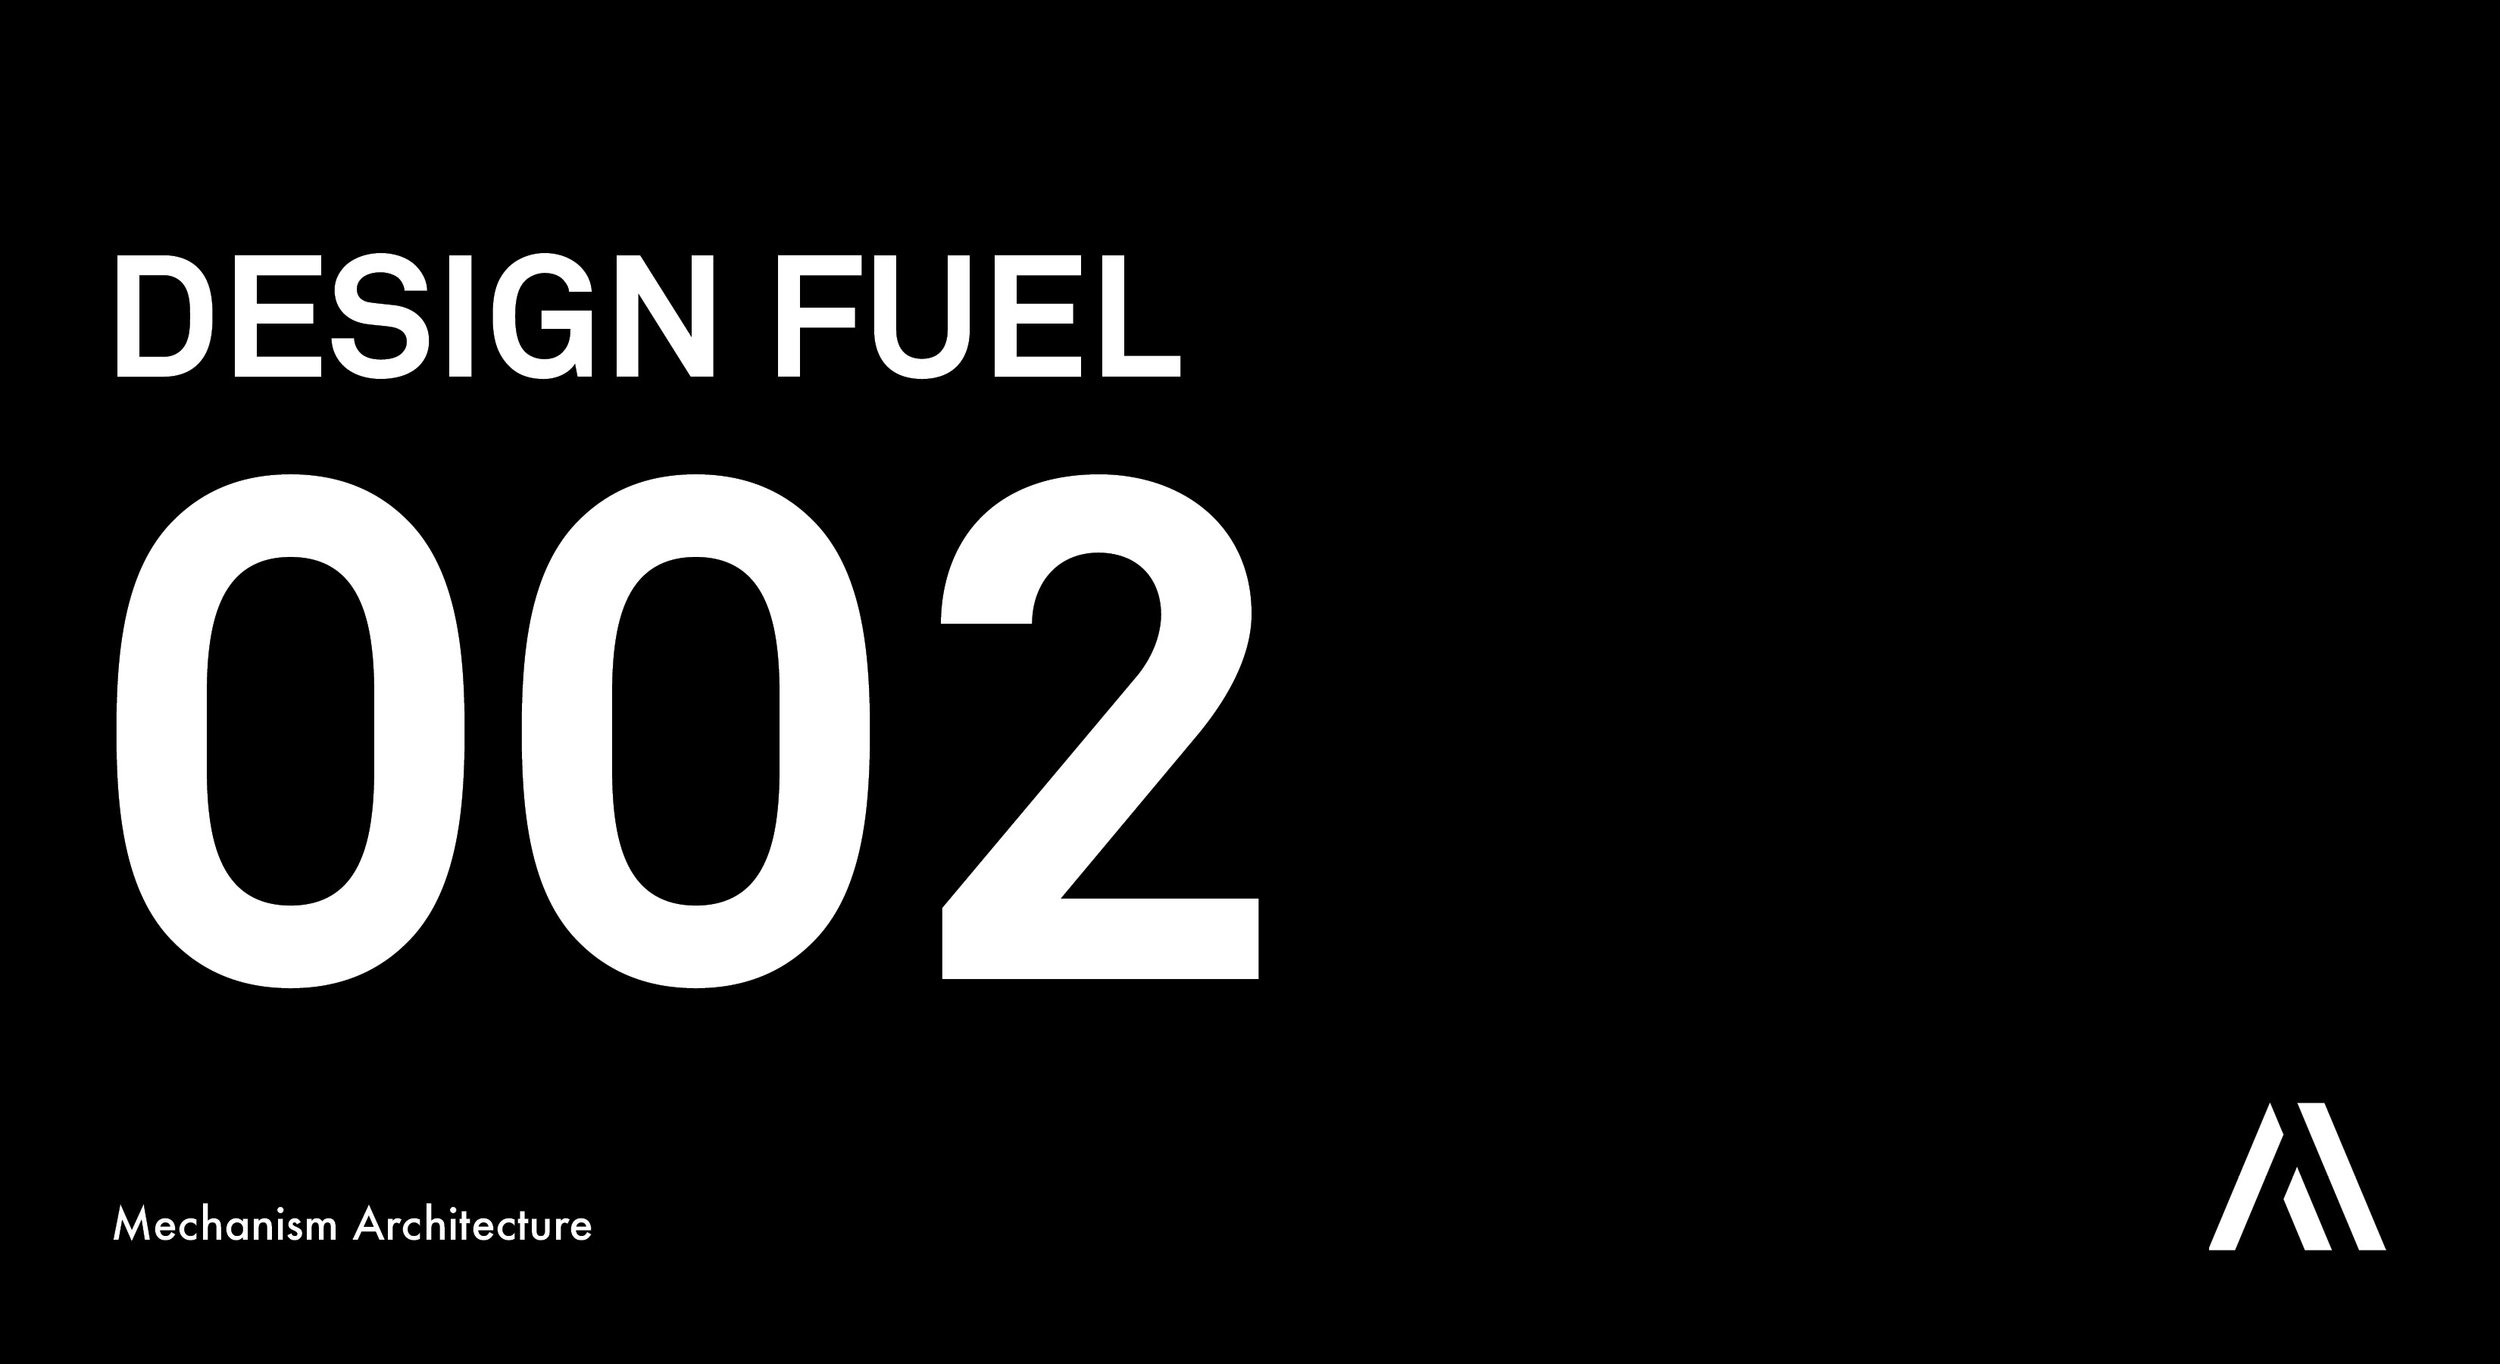 Design Fuel TItle slide 002.jpg